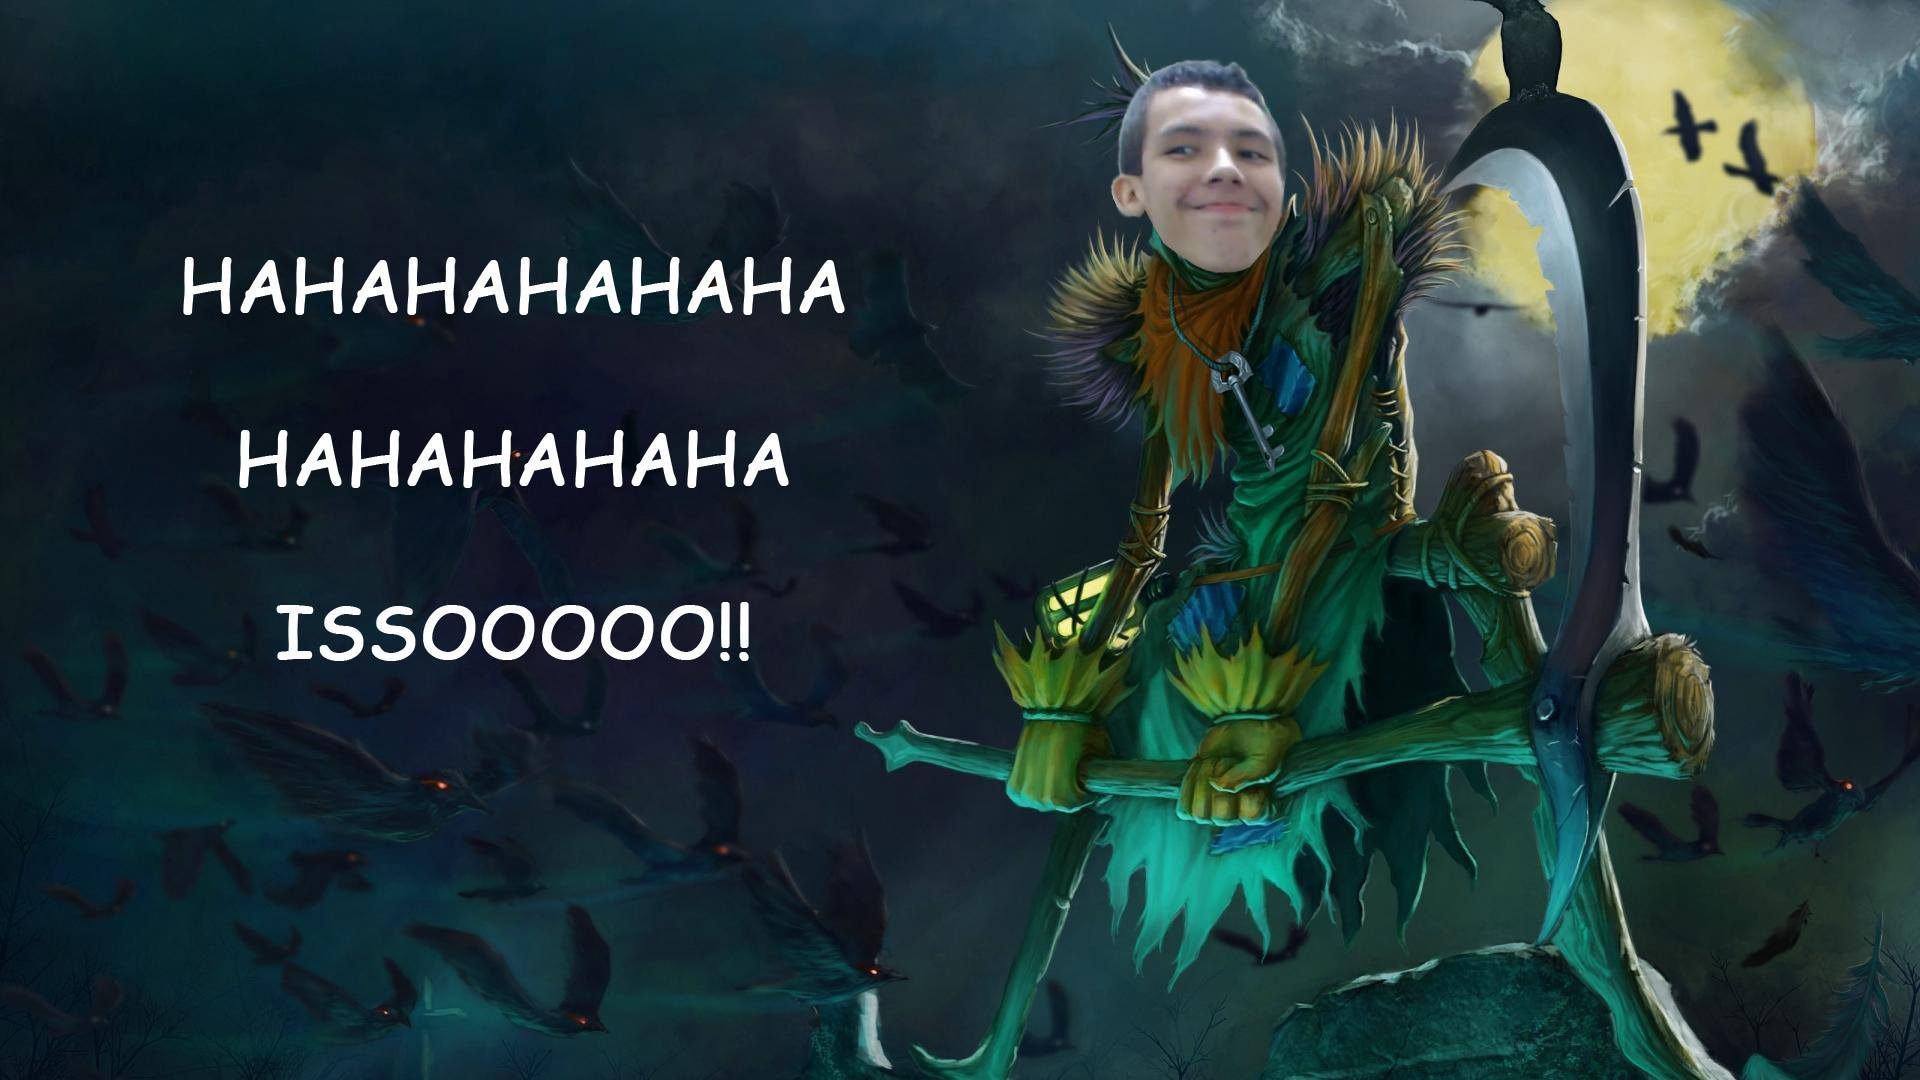 image of Fiddlesticks haha isso